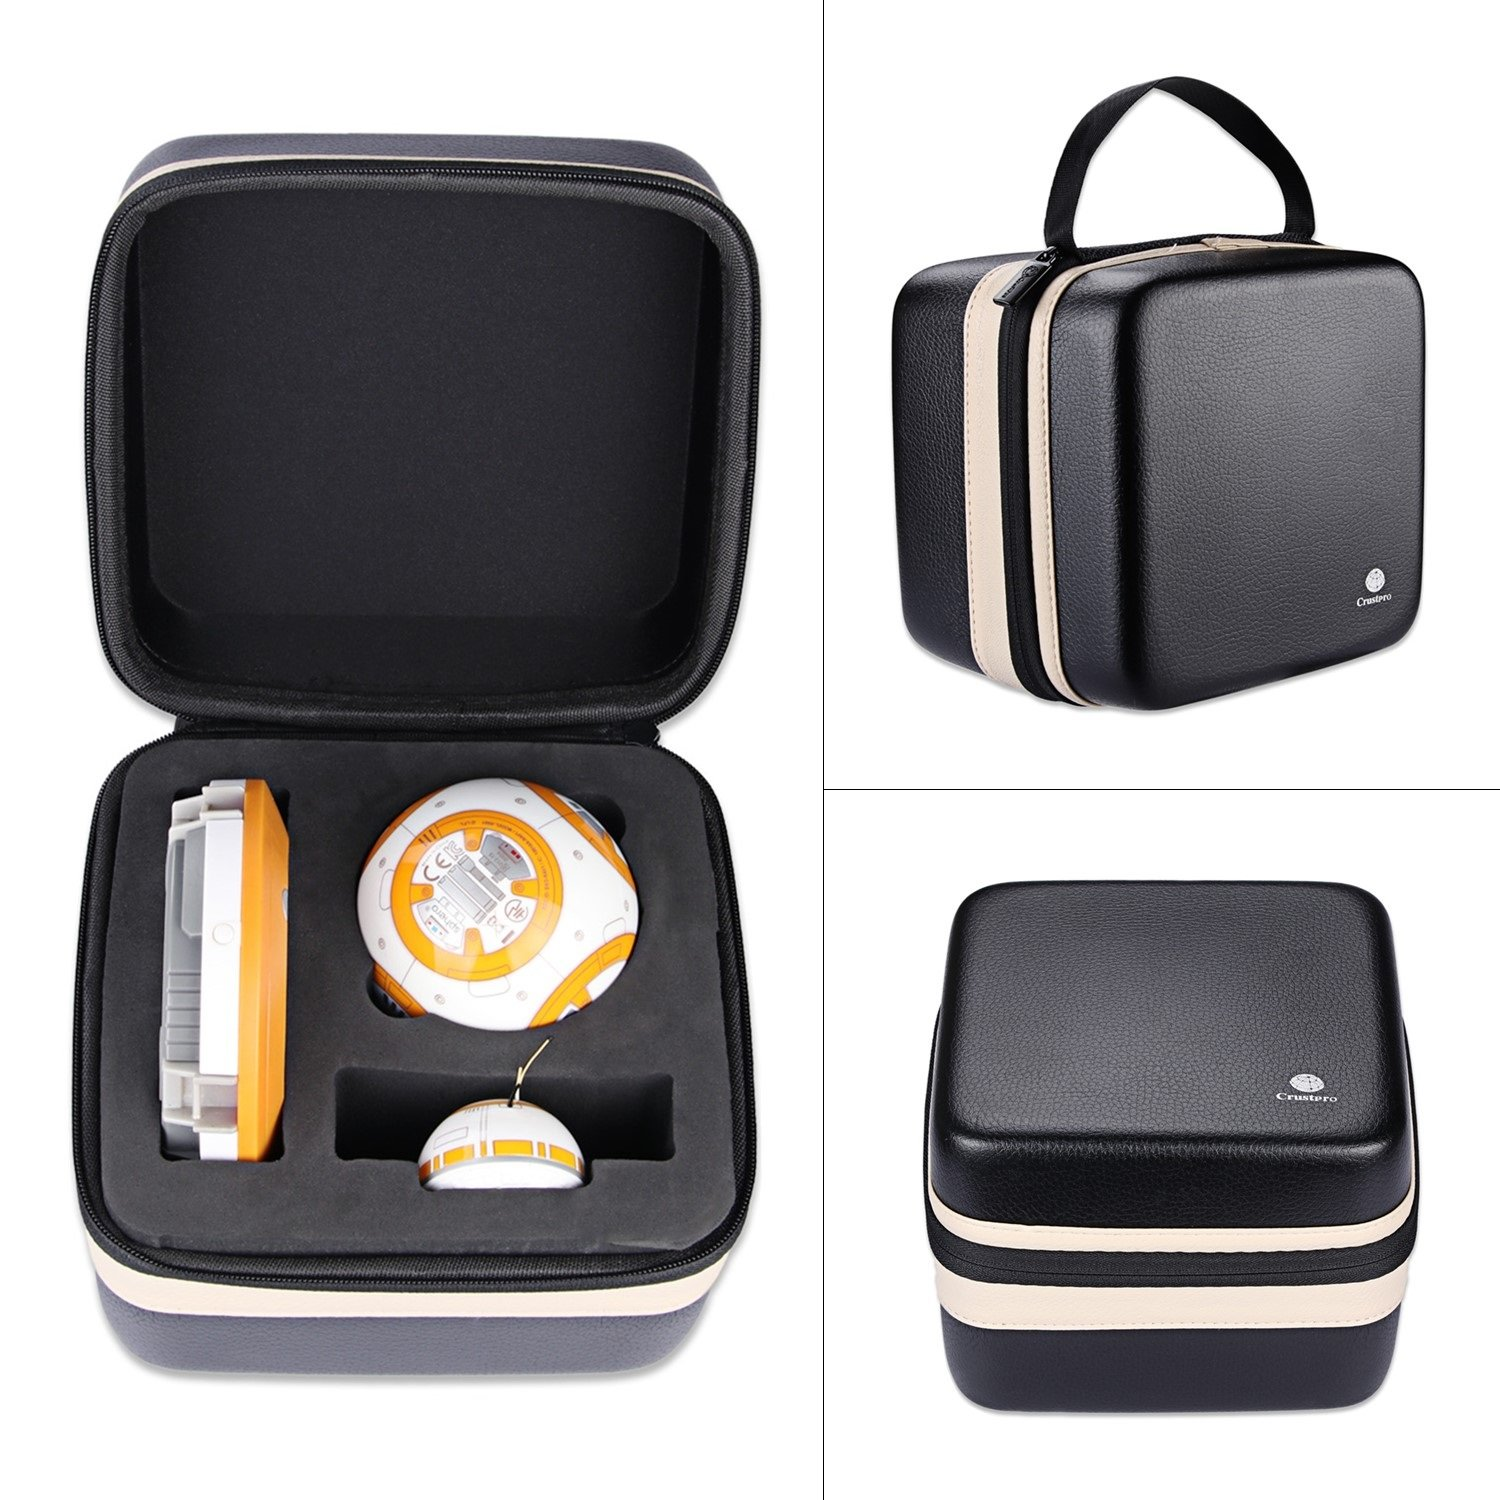 Hard Storage Travel Carrying Bag Case For Sphero Star Wars BB-8 App Controlled Robot Storage Box - Stores Sphero BB8 - Cable And Accessories CrustPro